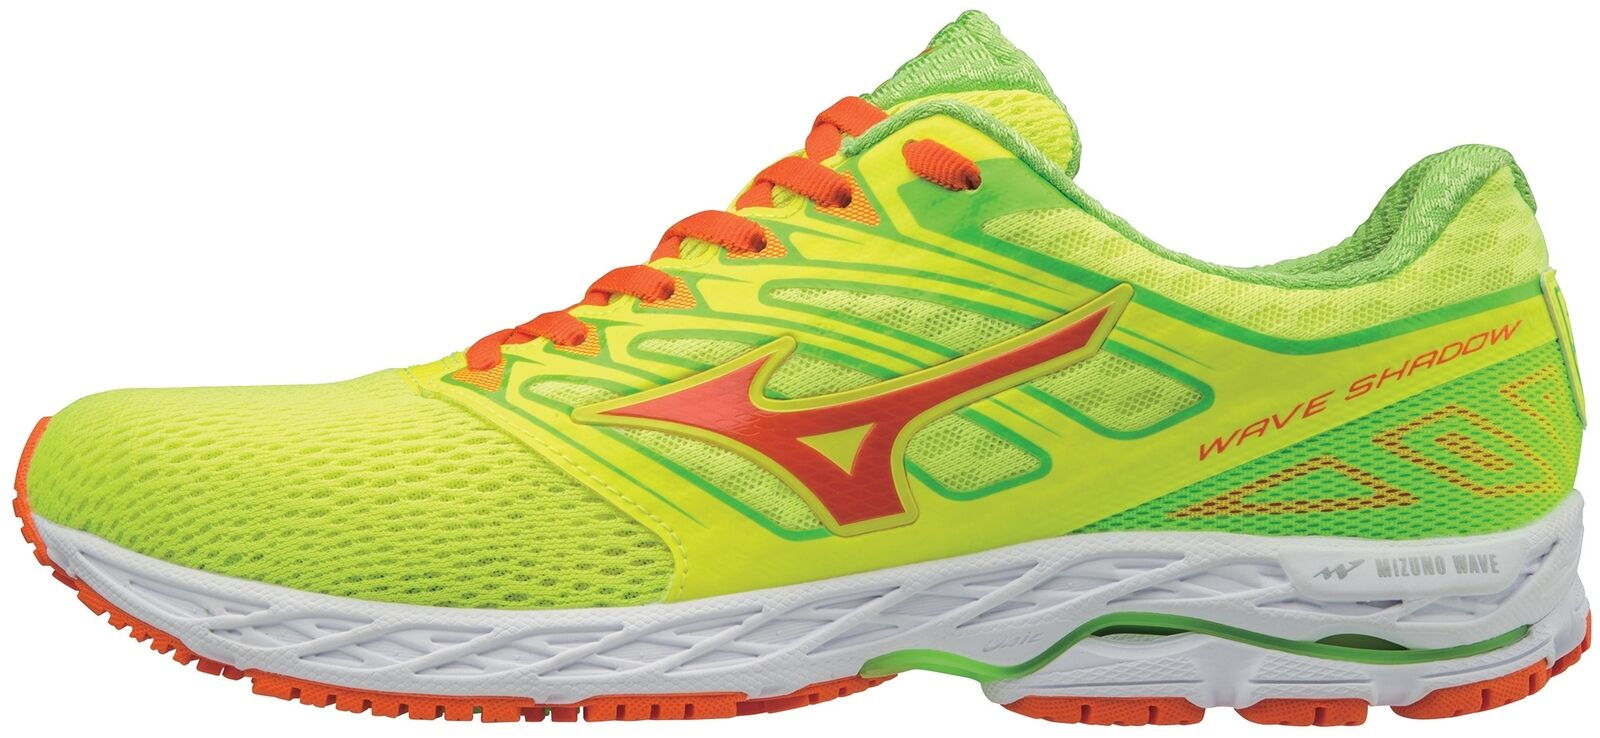 7e354f069 Wave Shadow Running shoes - Yellow Mizuno Mens nodgfp3486-Athletic ...